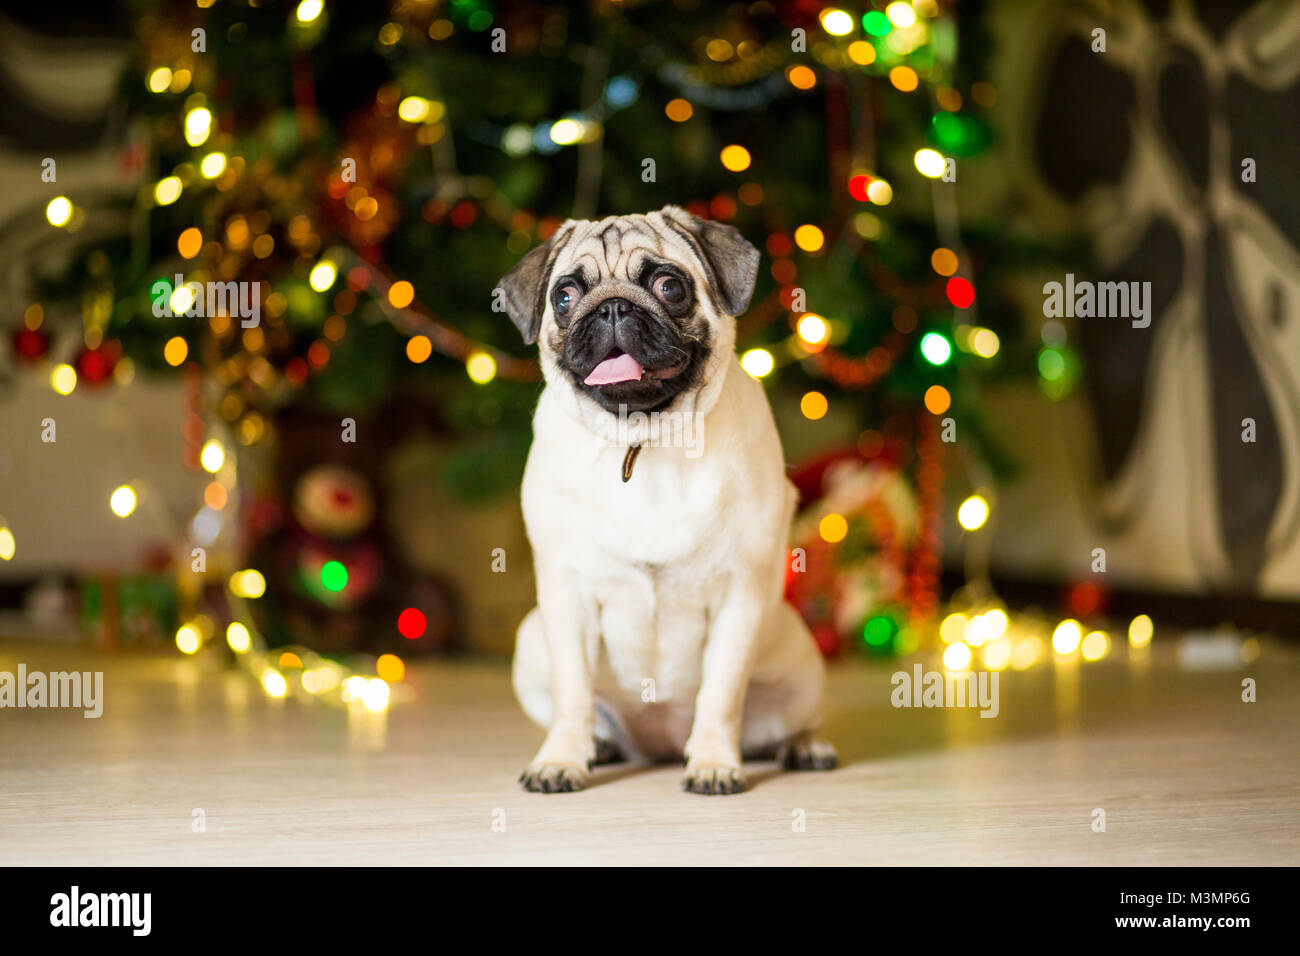 A Pug Dog Sitting On The Floor Near A Christmas Tree With Garlands